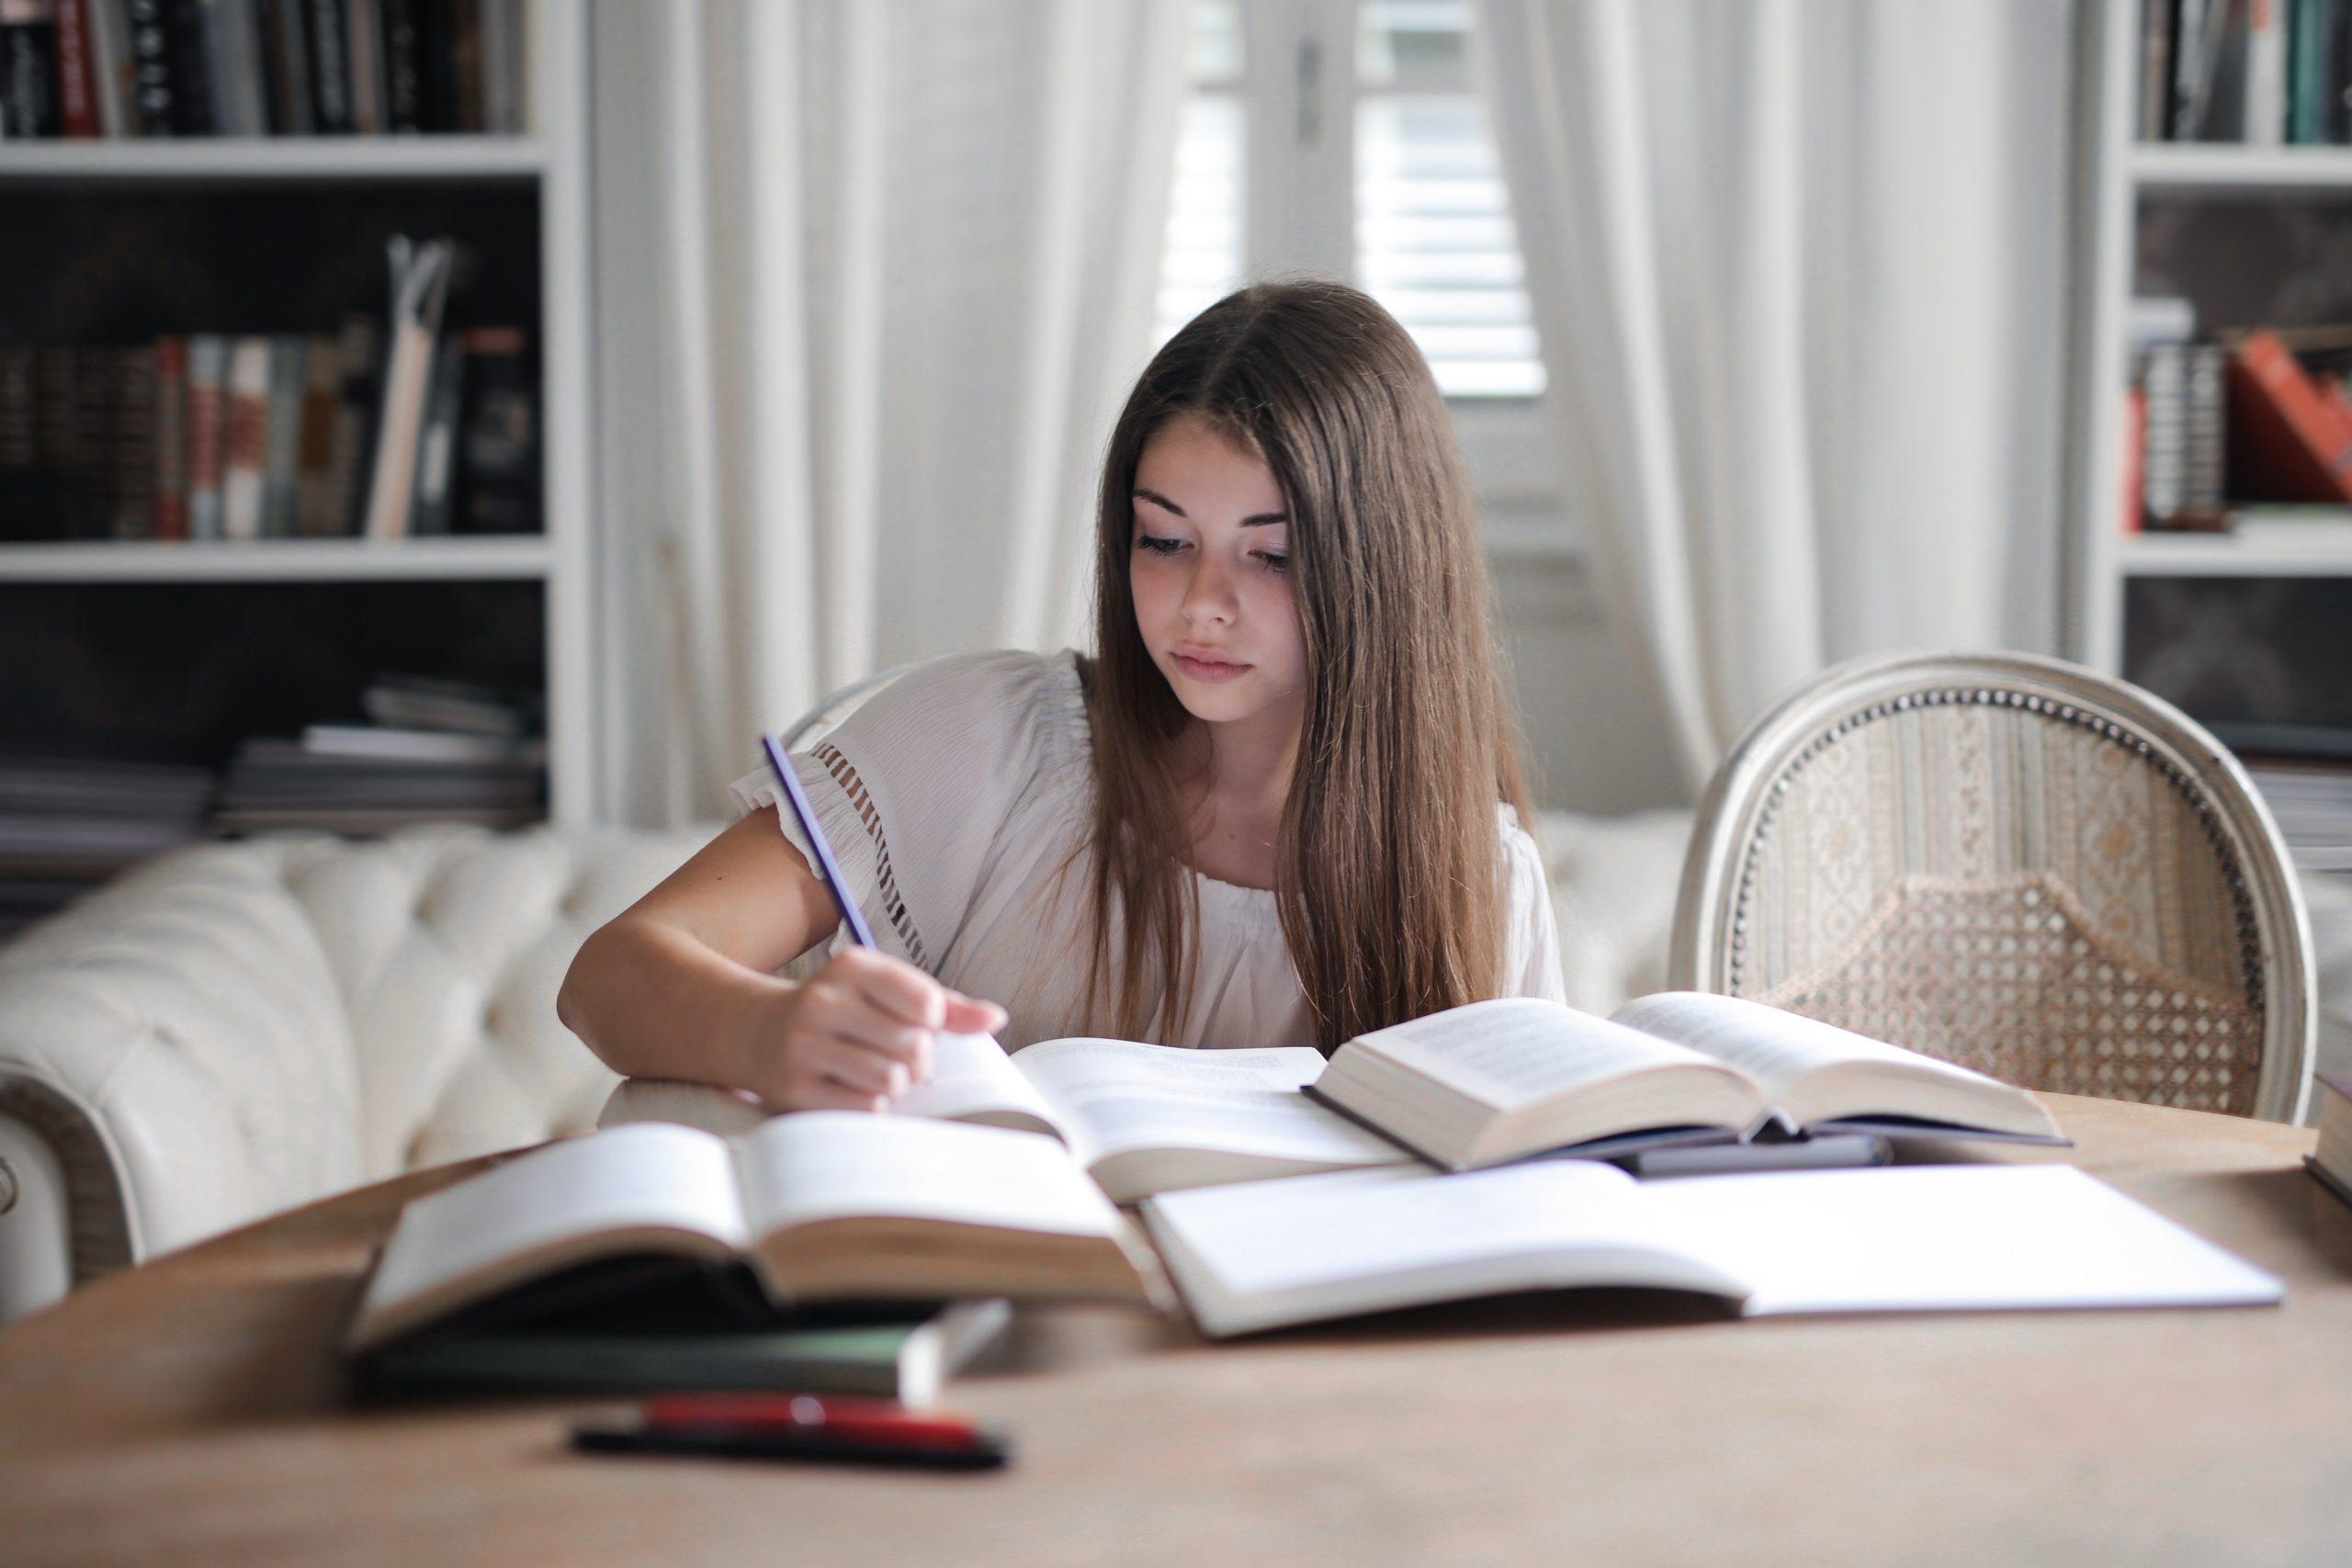 Best Habits to Study More Effectively